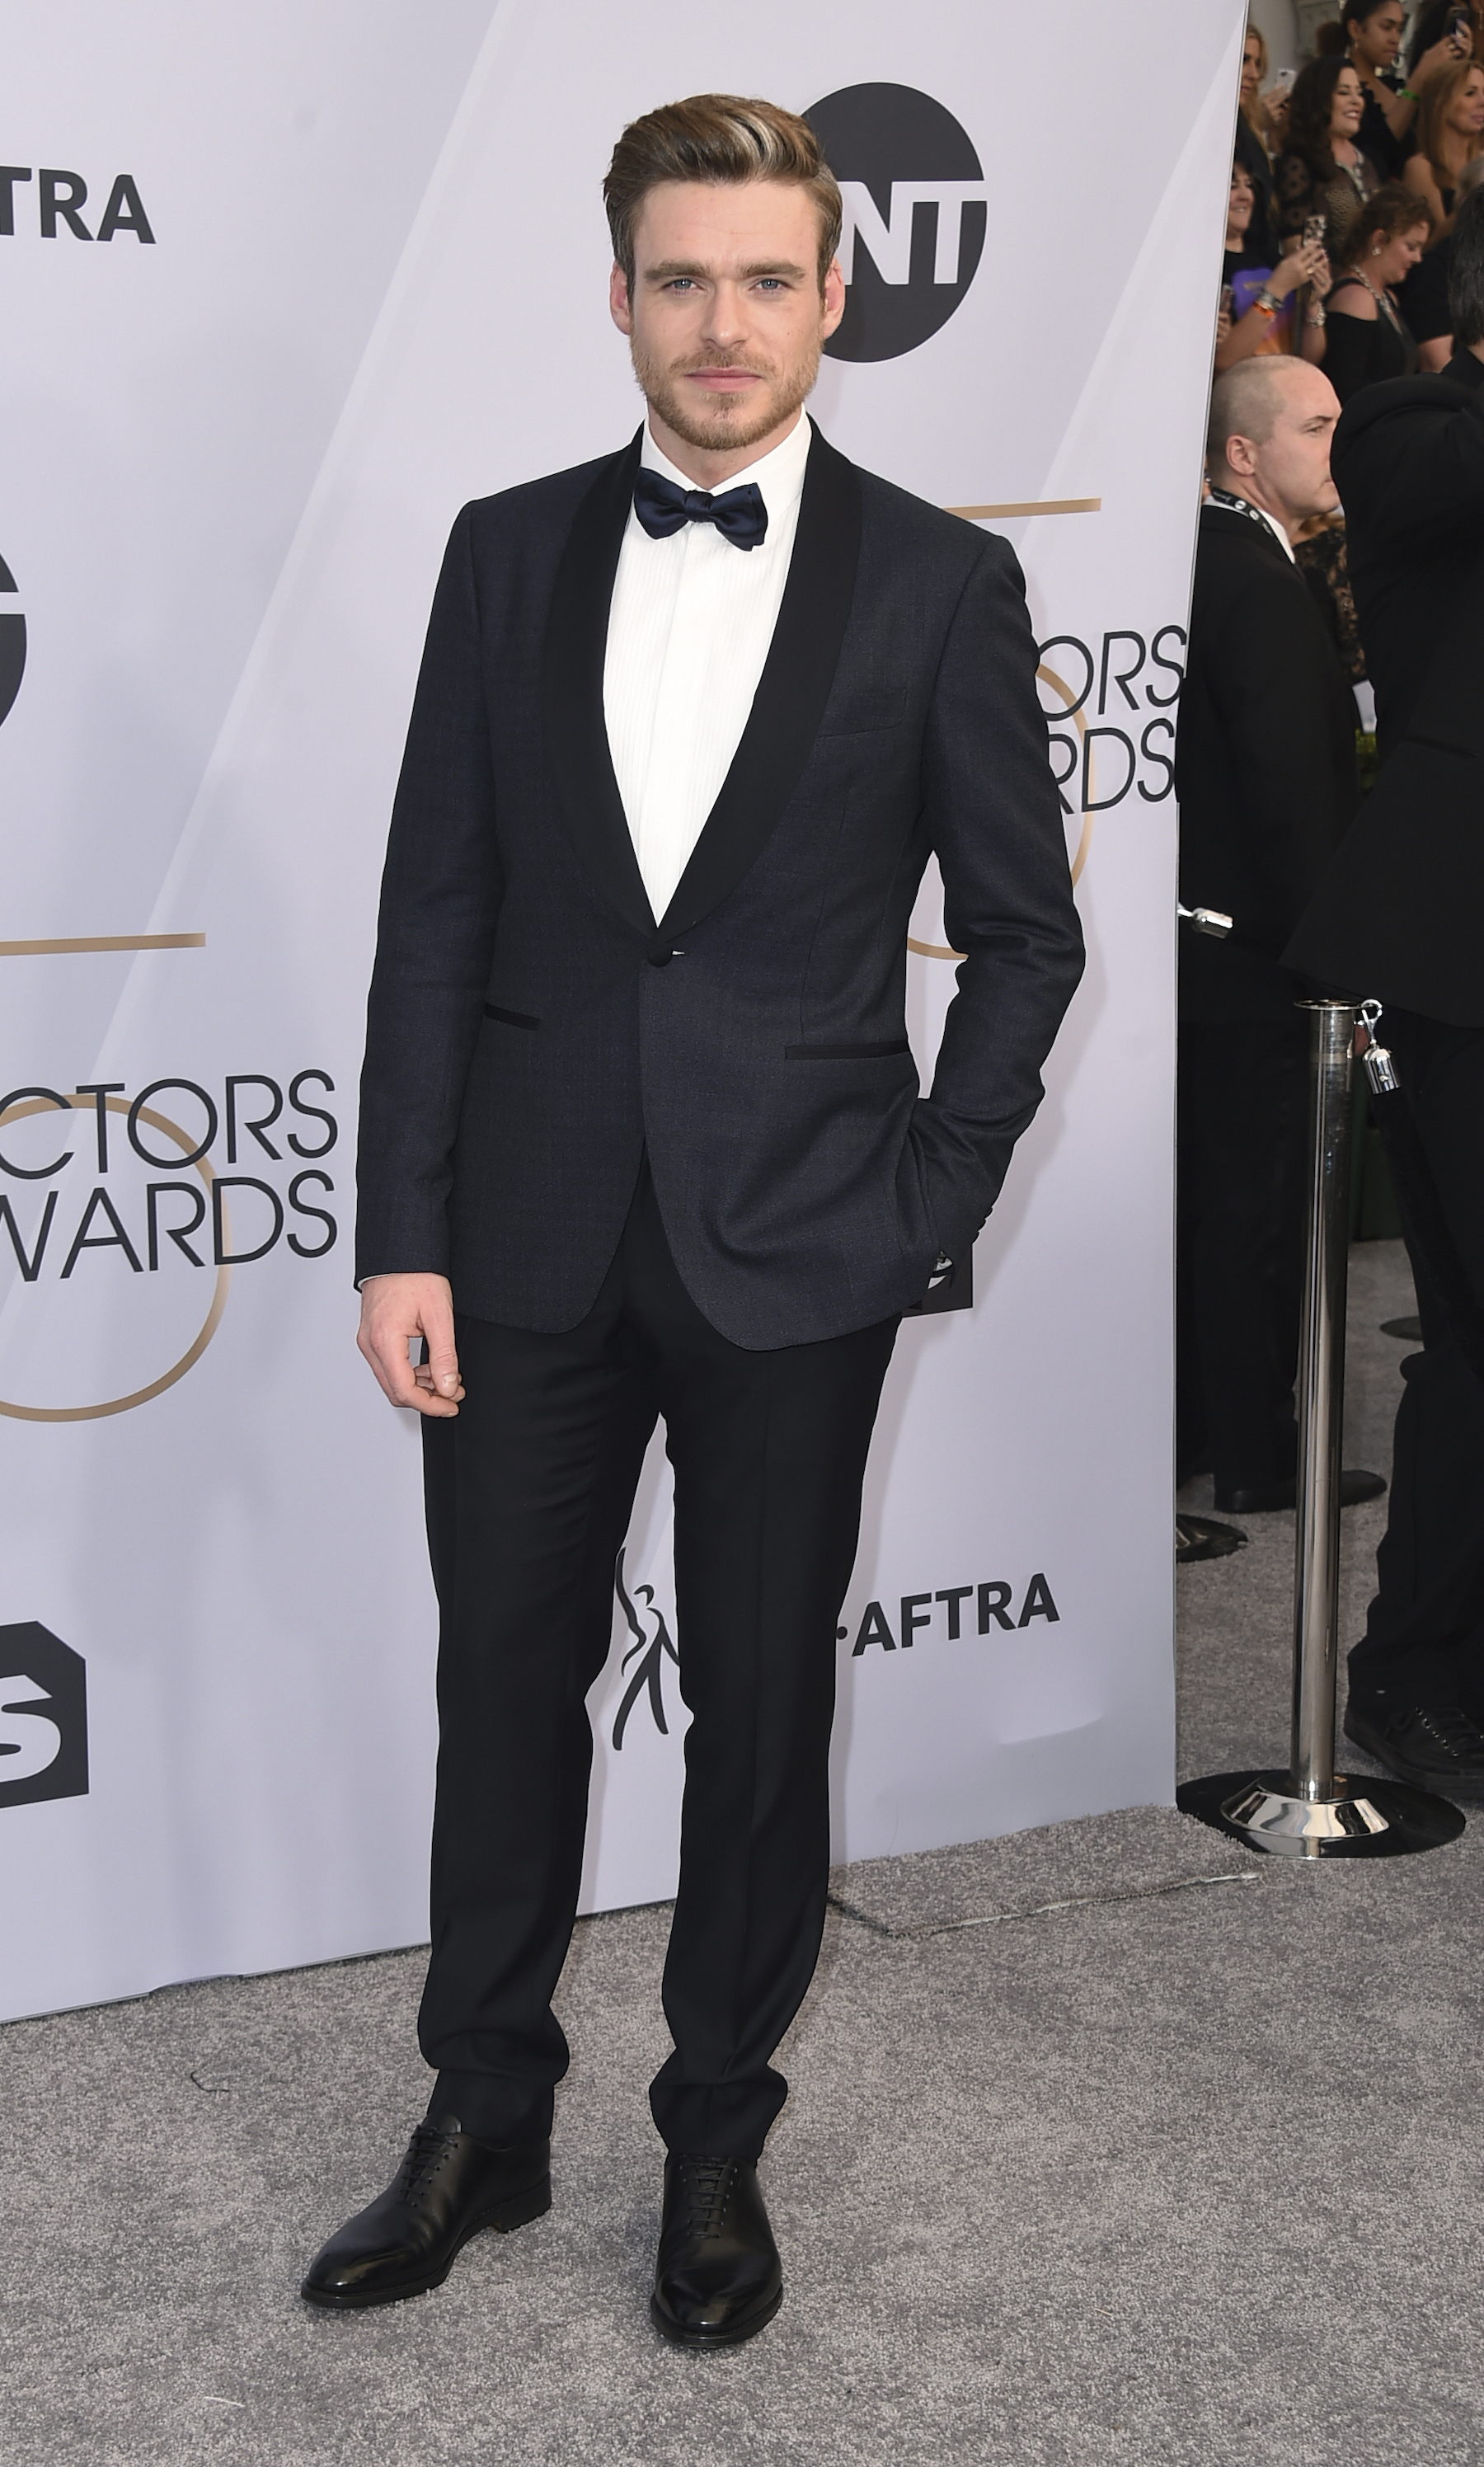 "<div class=""meta image-caption""><div class=""origin-logo origin-image ap""><span>AP</span></div><span class=""caption-text"">Richard Madden arrives at the 25th annual Screen Actors Guild Awards at the Shrine Auditorium & Expo Hall on Sunday, Jan. 27, 2019, in Los Angeles. (Jordan Strauss/Invision/AP)</span></div>"